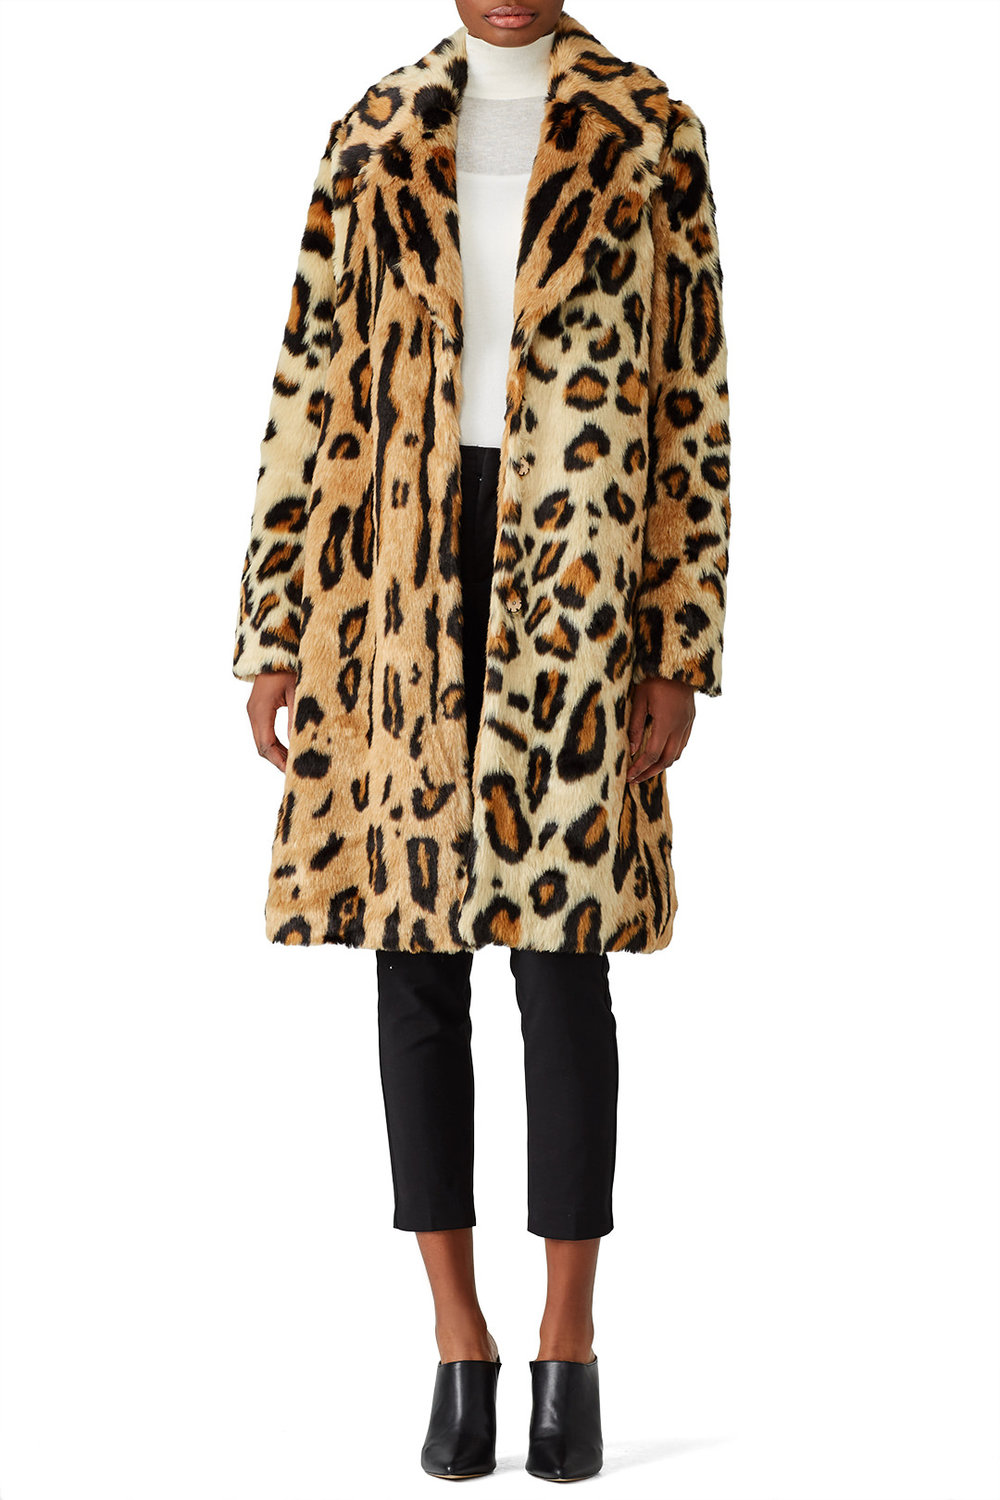 Show Me Your Mumu Miss Cindy Faux Overcoat - LOVE LOVE LOVE! I'm thinking about buying this one when I rent it next!